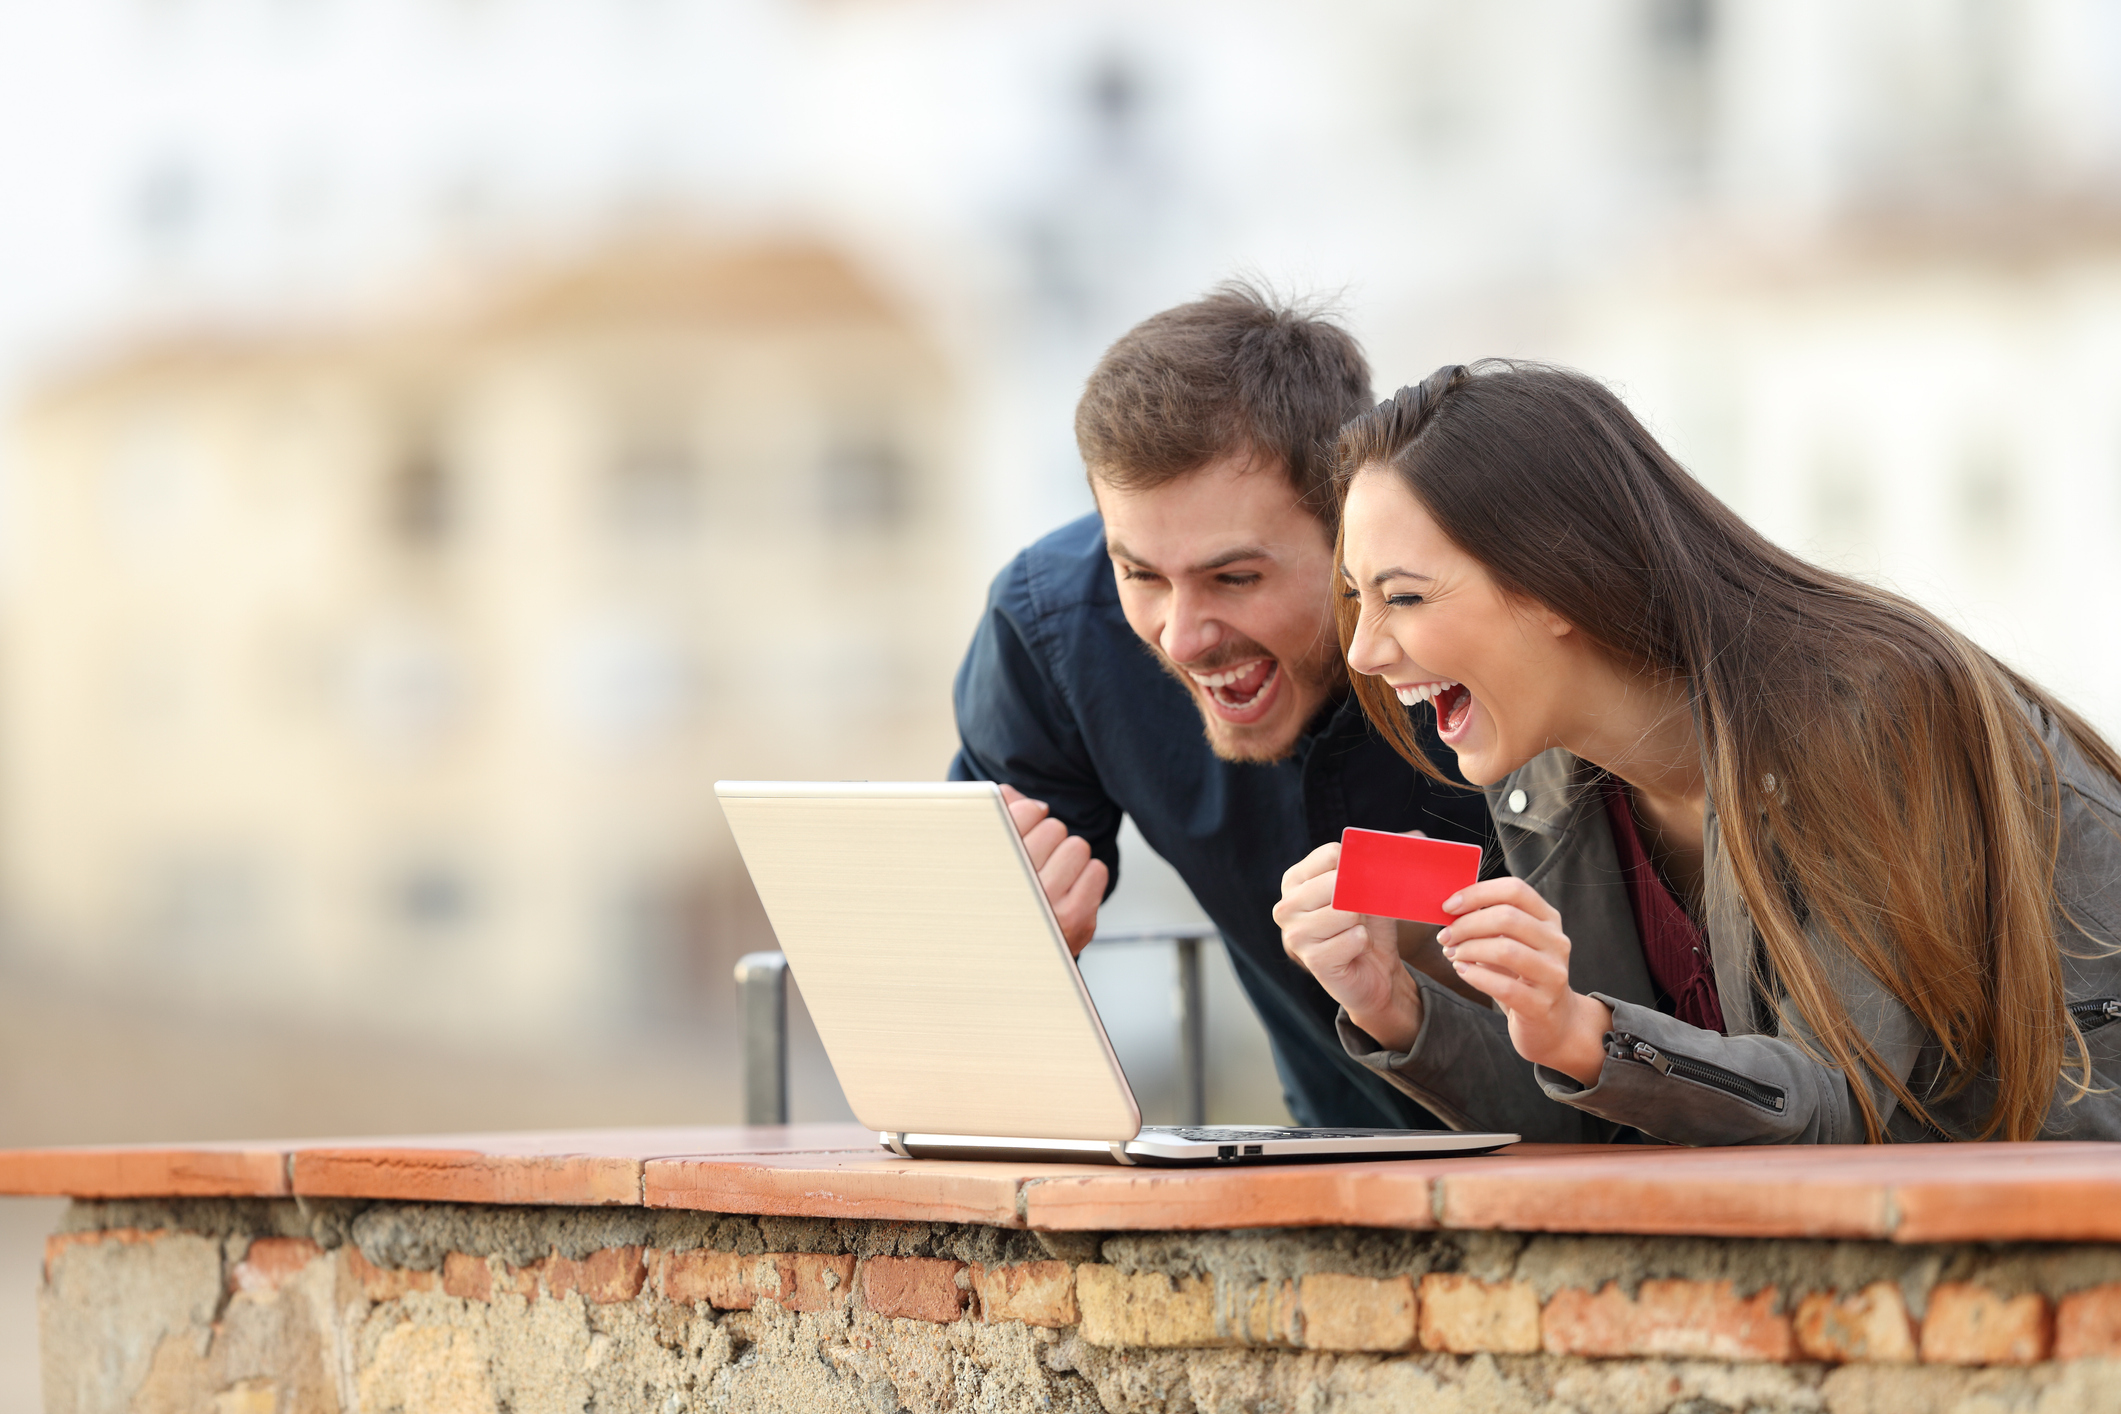 Young couple very excited about their credit card and what's on their computer screen.